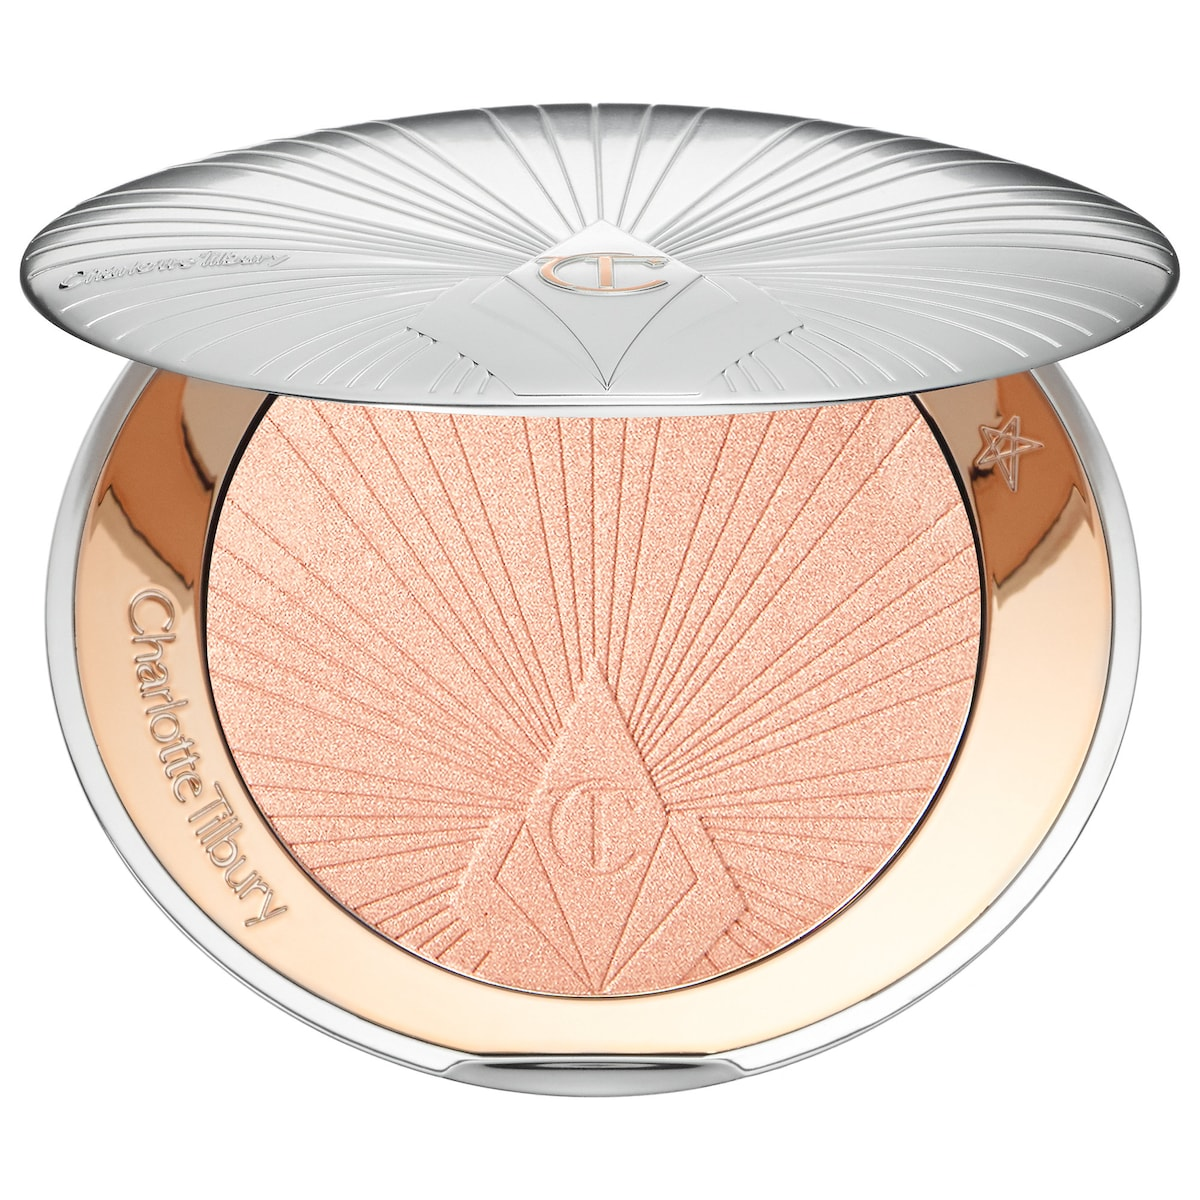 Charlotte Tilbury highlighter